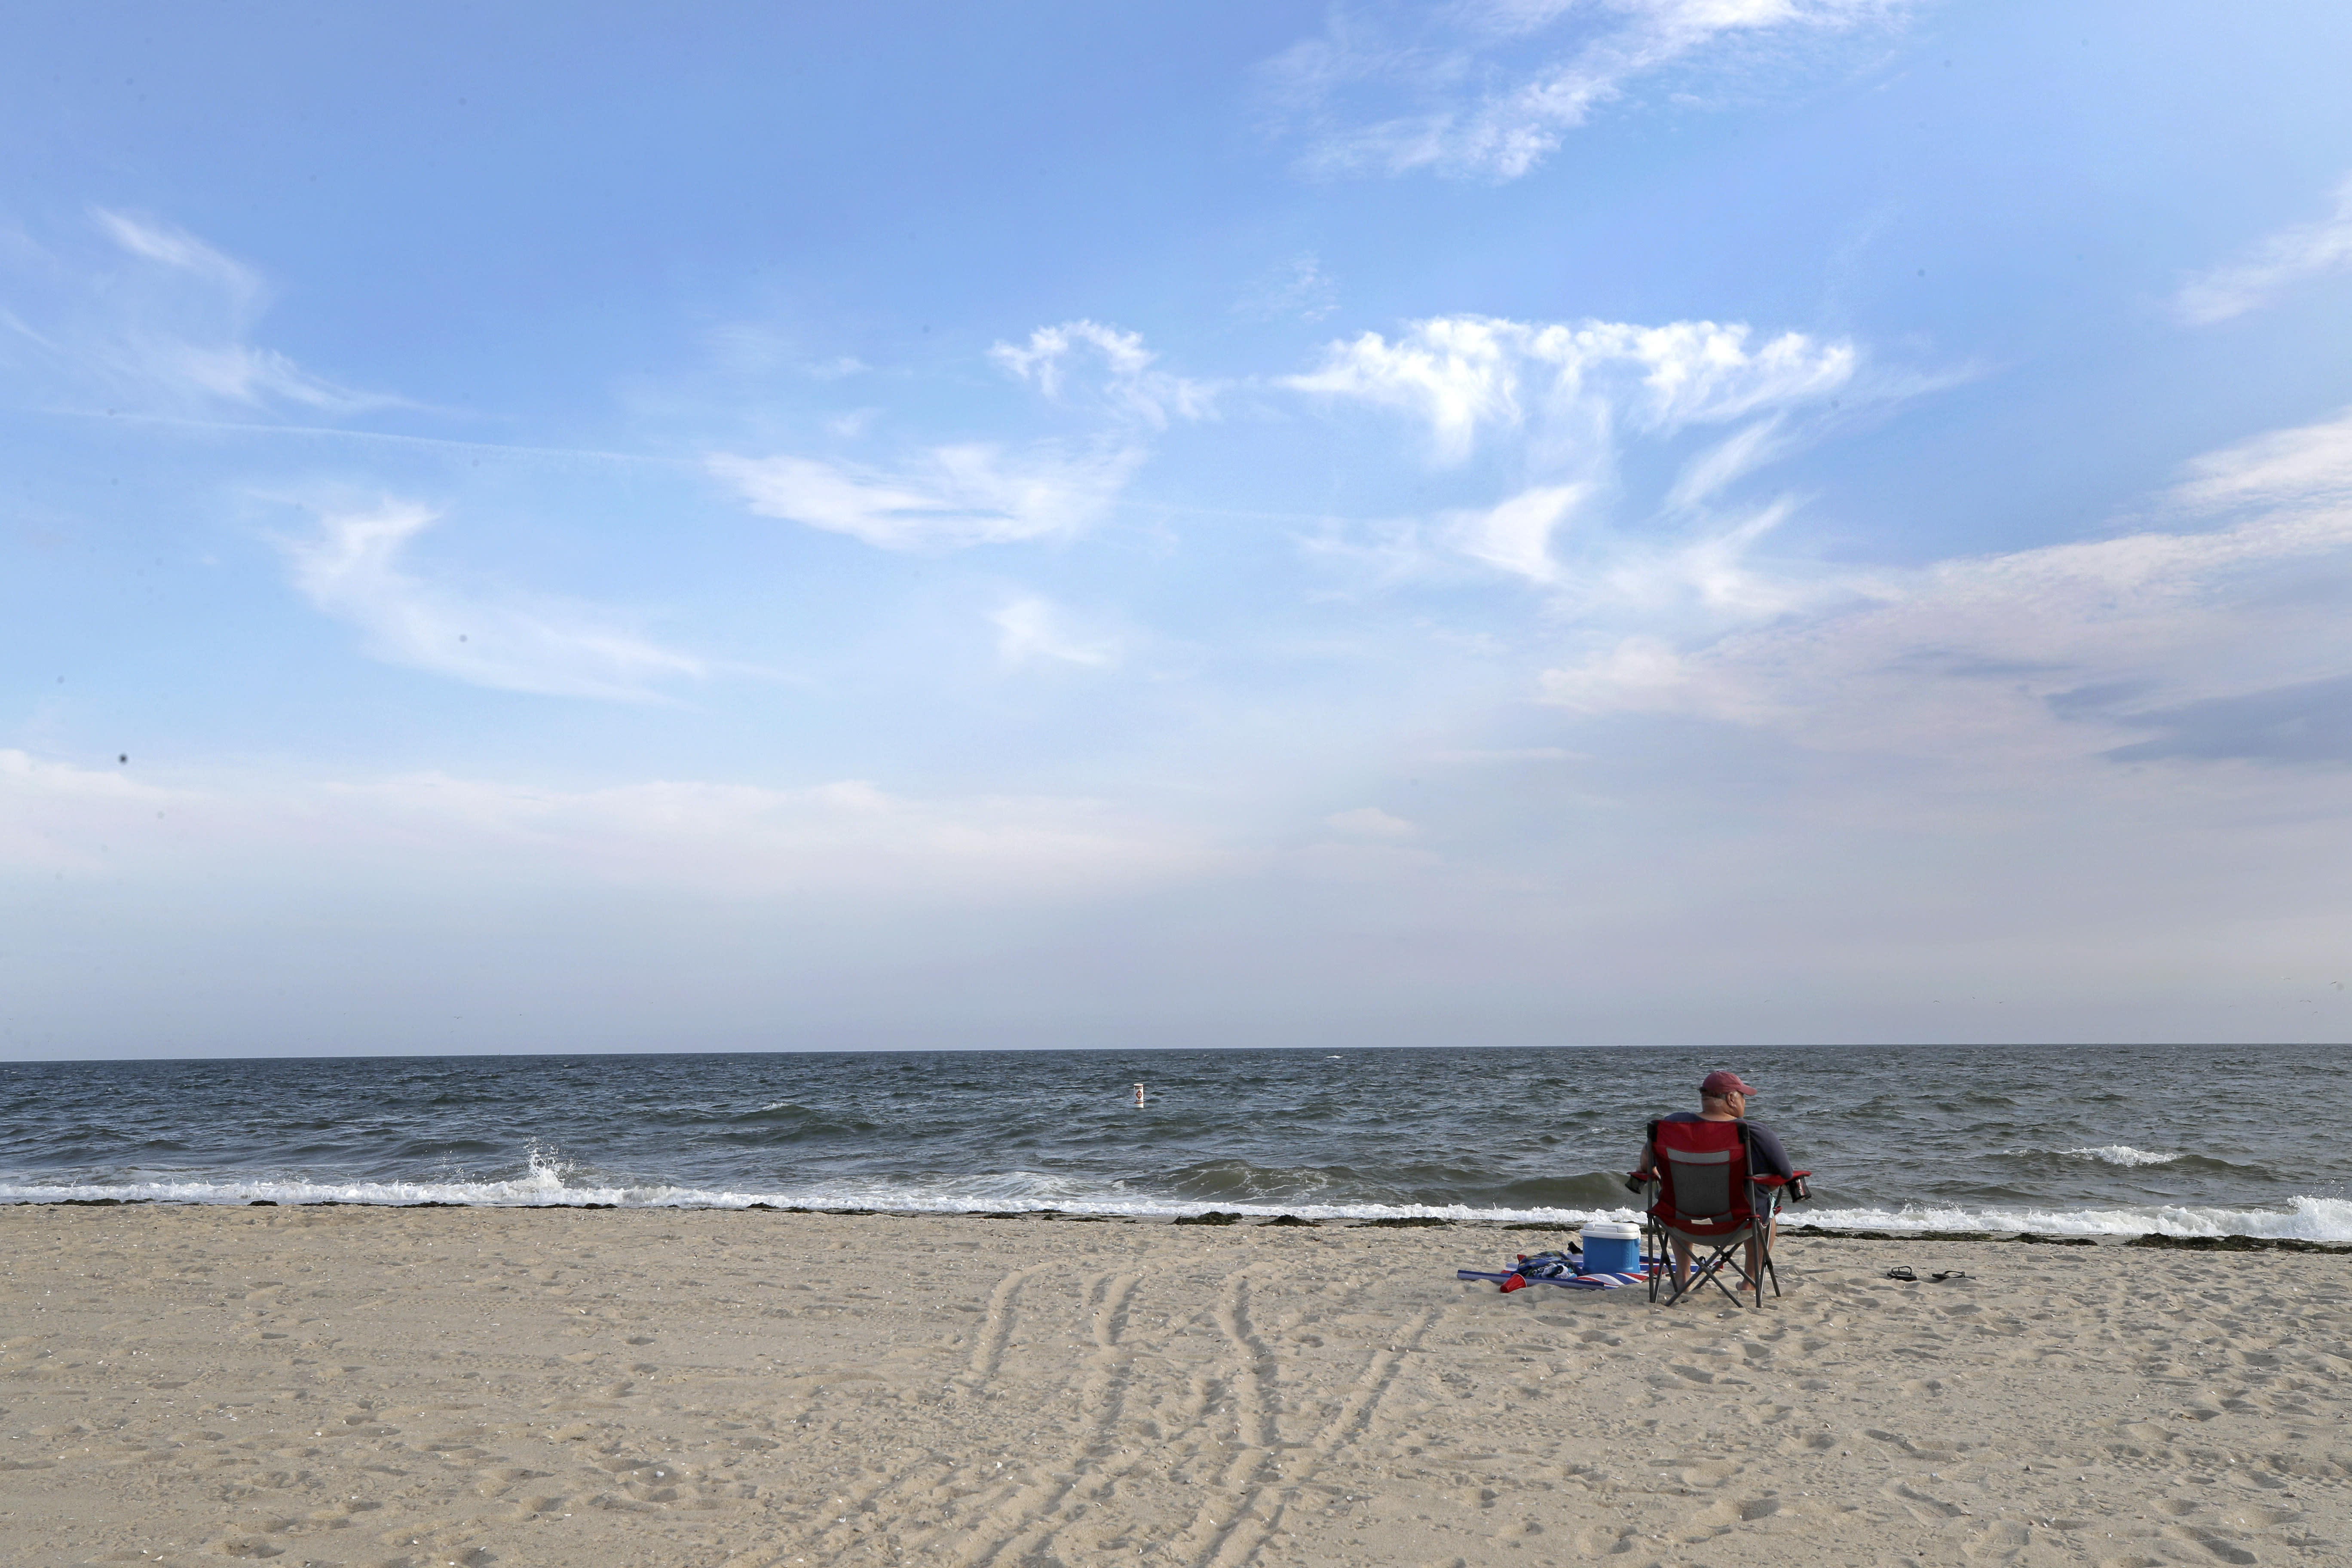 In this Aug. 21, 2019 photo, a man enjoys the view at Covell Beach in Centerville, Mass. Vineyard Winds' proposed buried energy cables would stretch from offshore wind turbines, through the ocean, under the sand and parking lot at Covell Beach, to a landing point where the cables would then extend to a grid connection inland. But as Trump has made clear how much he hates wind turbines, all the offshore wind projects, including the nation's first utility-scale offshore wind project, an 84 turbine, $2.8 billion wind farm slated to rise 15 miles off Martha's Vineyard, have stalled. (AP Photo/Elise Amendola)